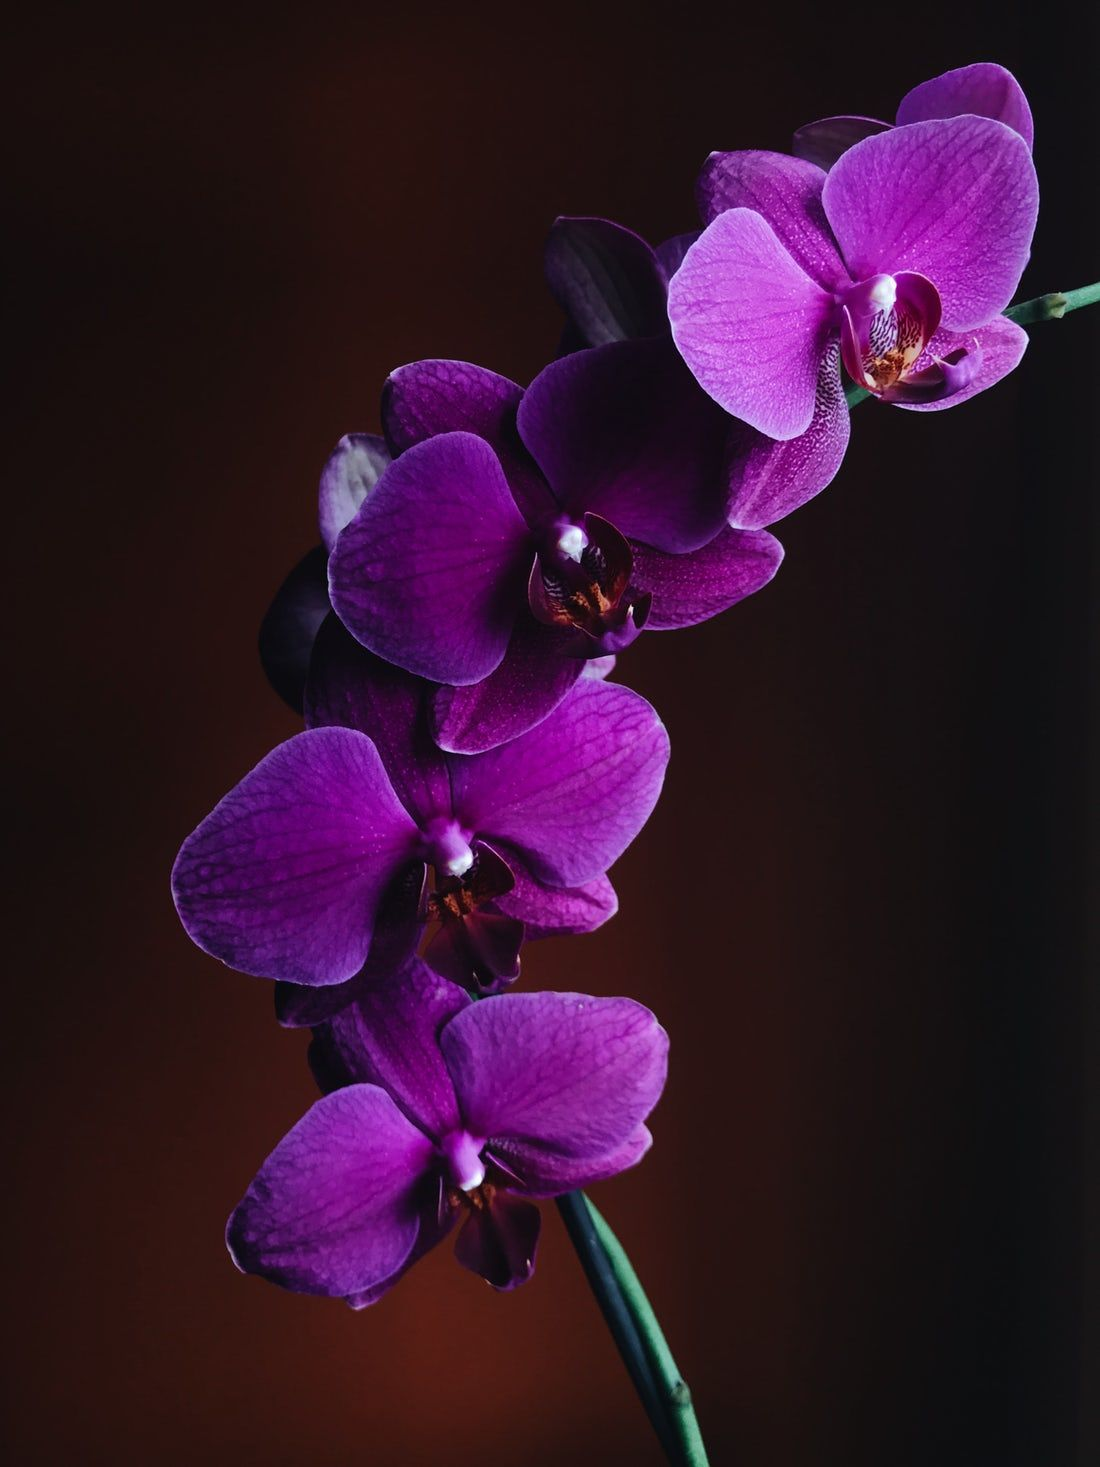 Flower Of The Day May 7 2019 Nature Post In 2020 Orchid Wallpaper Purple Orchids Orchid Flower